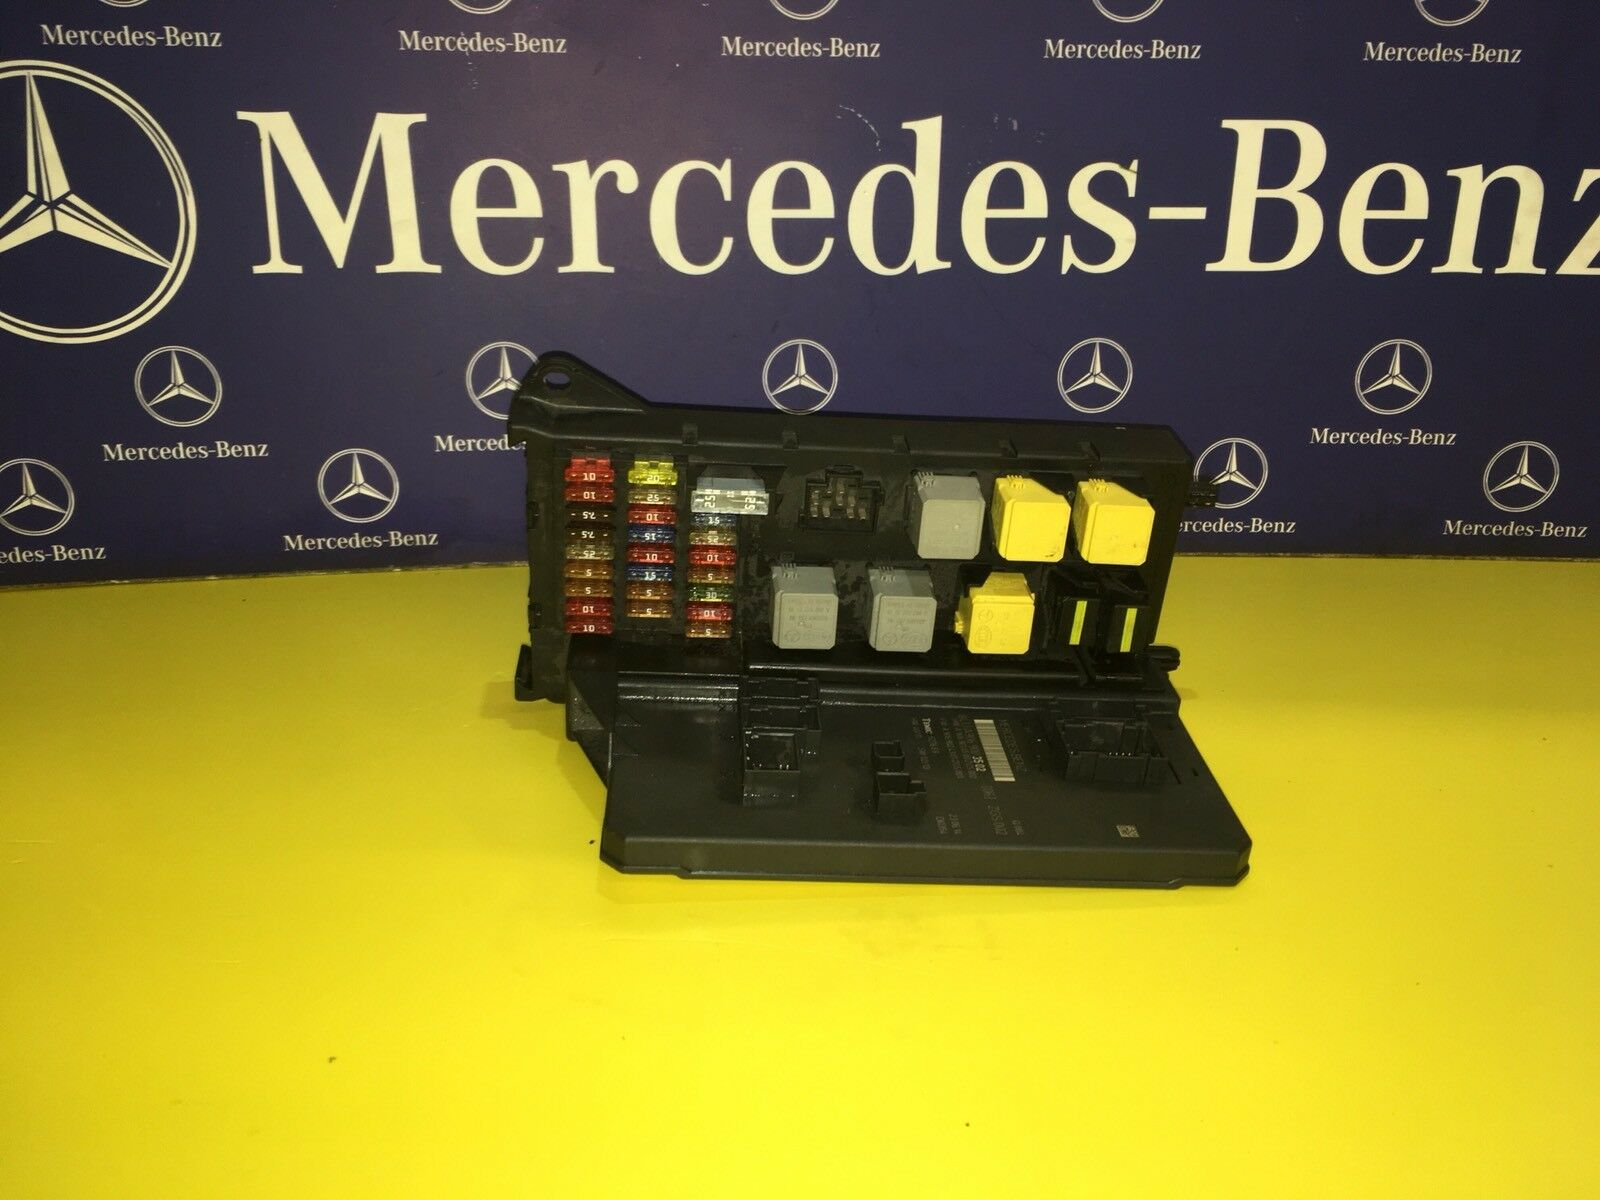 Genuine Mercedes Sprinter Fuse Box Sam Unit A9069006303 With A Fiat Scudo 1 Of 5only 4 Available